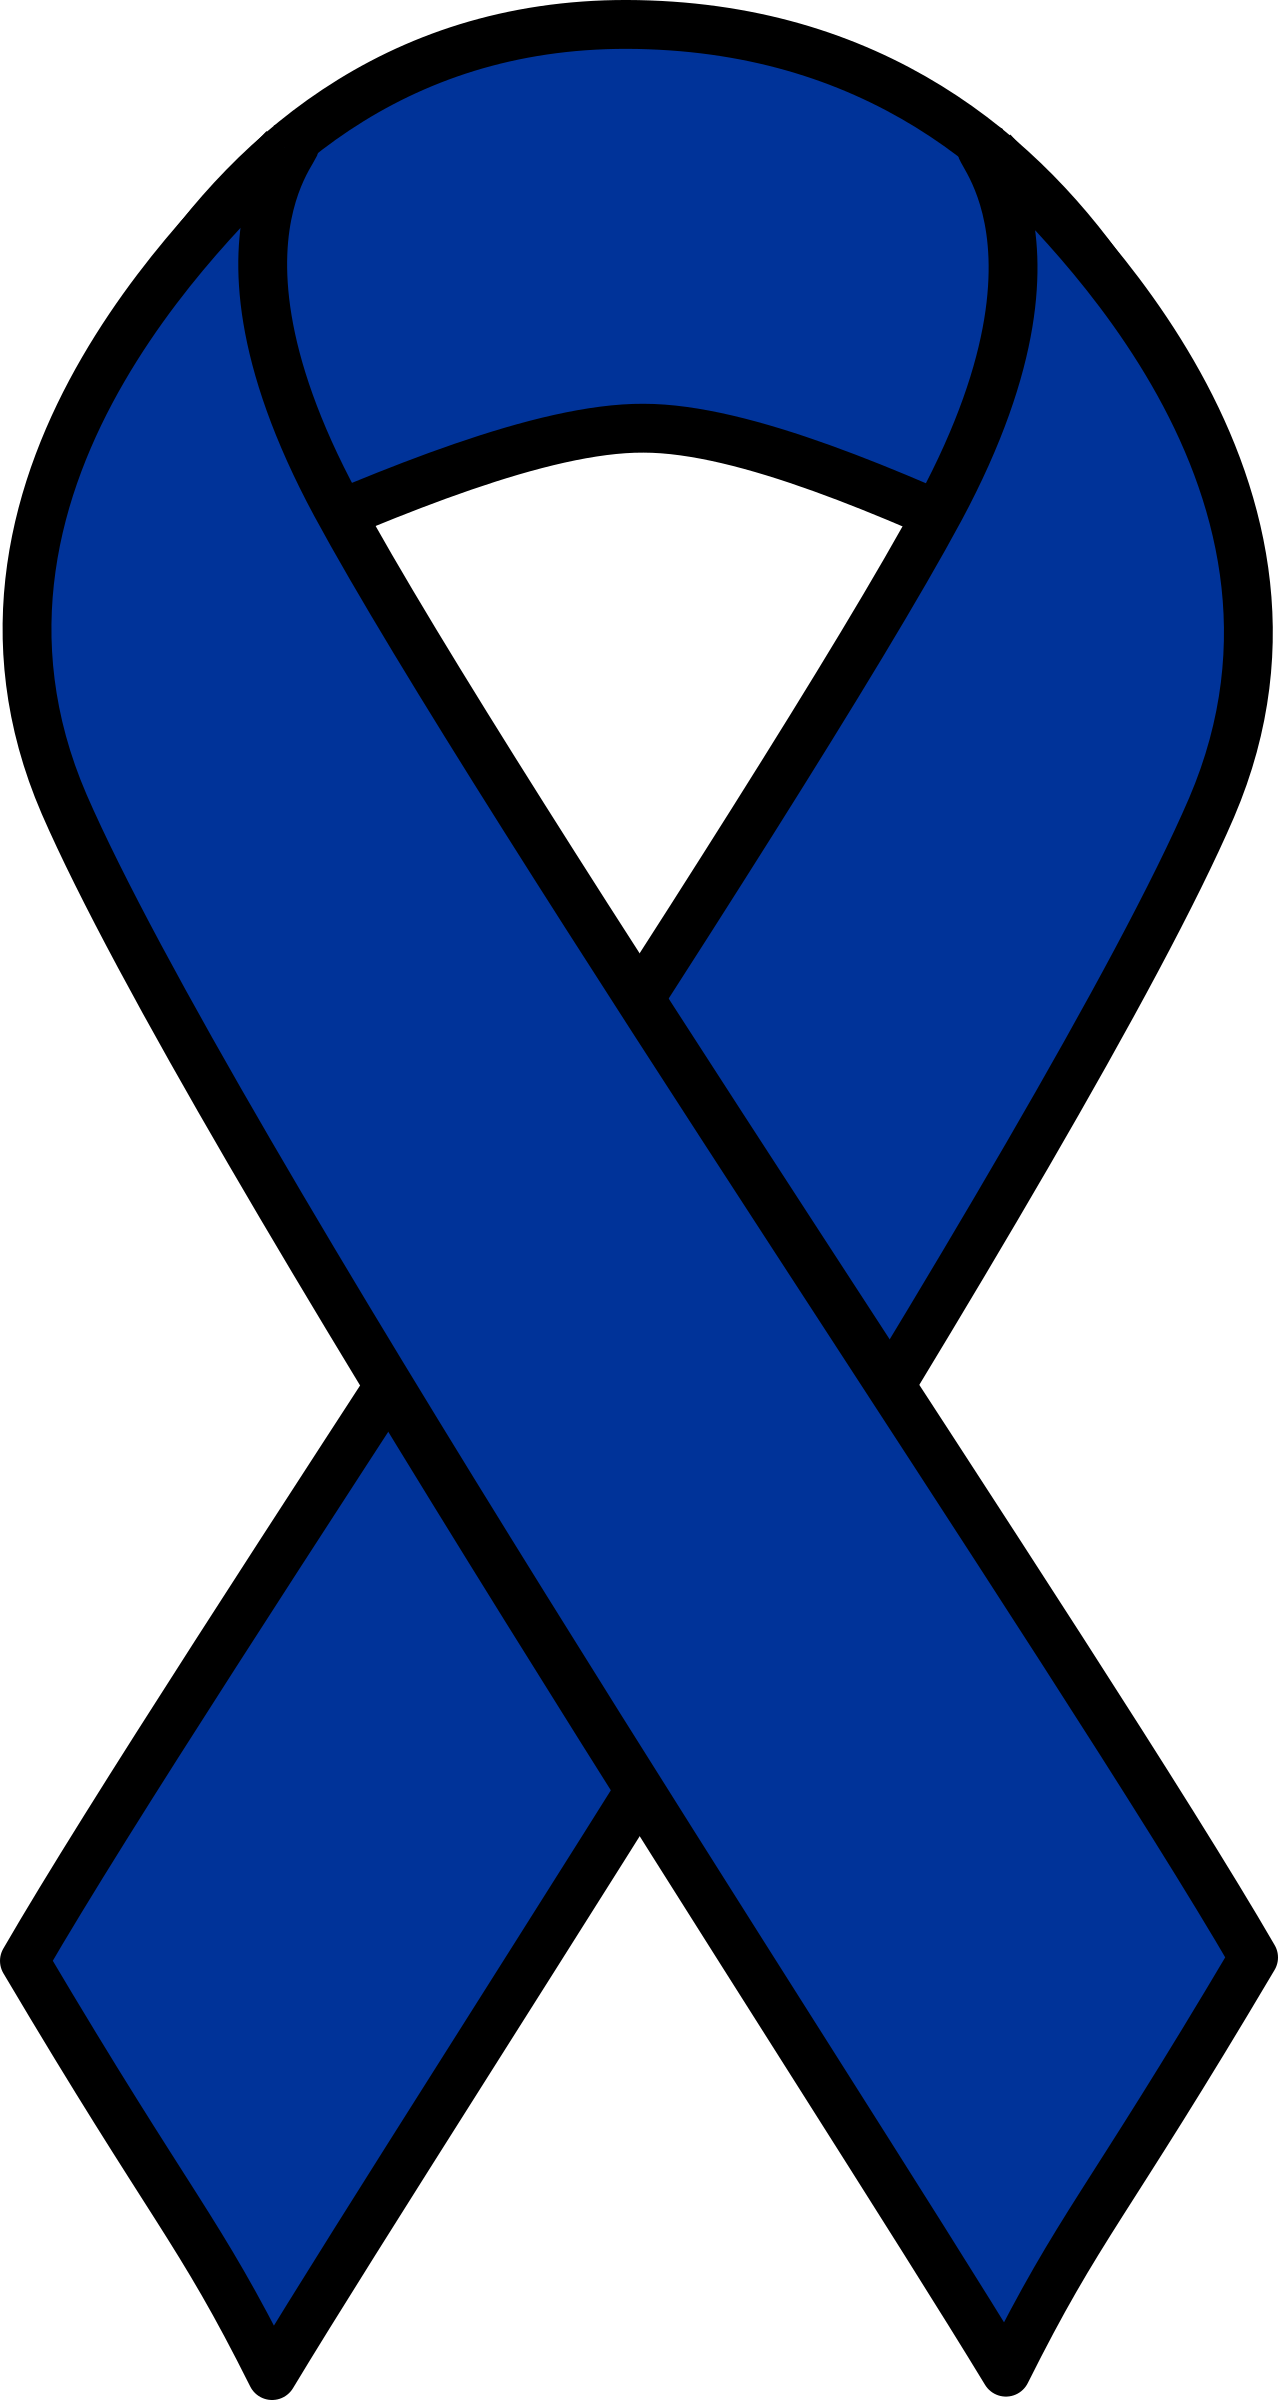 Awareness ribbon with crown clipart clipart freeuse stock 28+ Collection of Blue Ribbon Clipart Black And White | High quality ... clipart freeuse stock